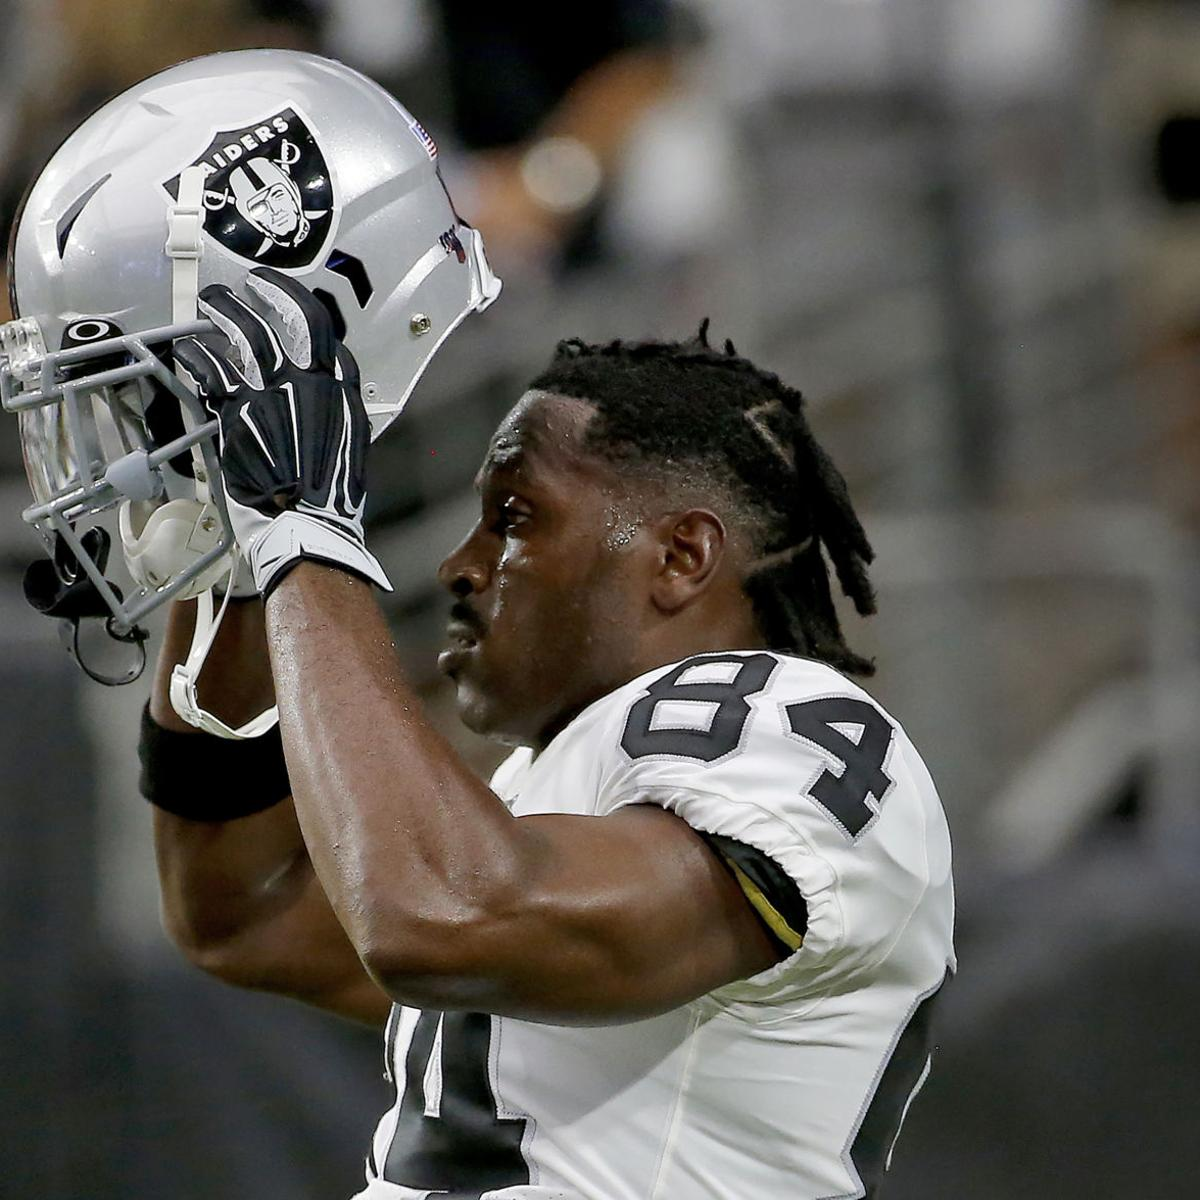 raiders terminate brandon marshall